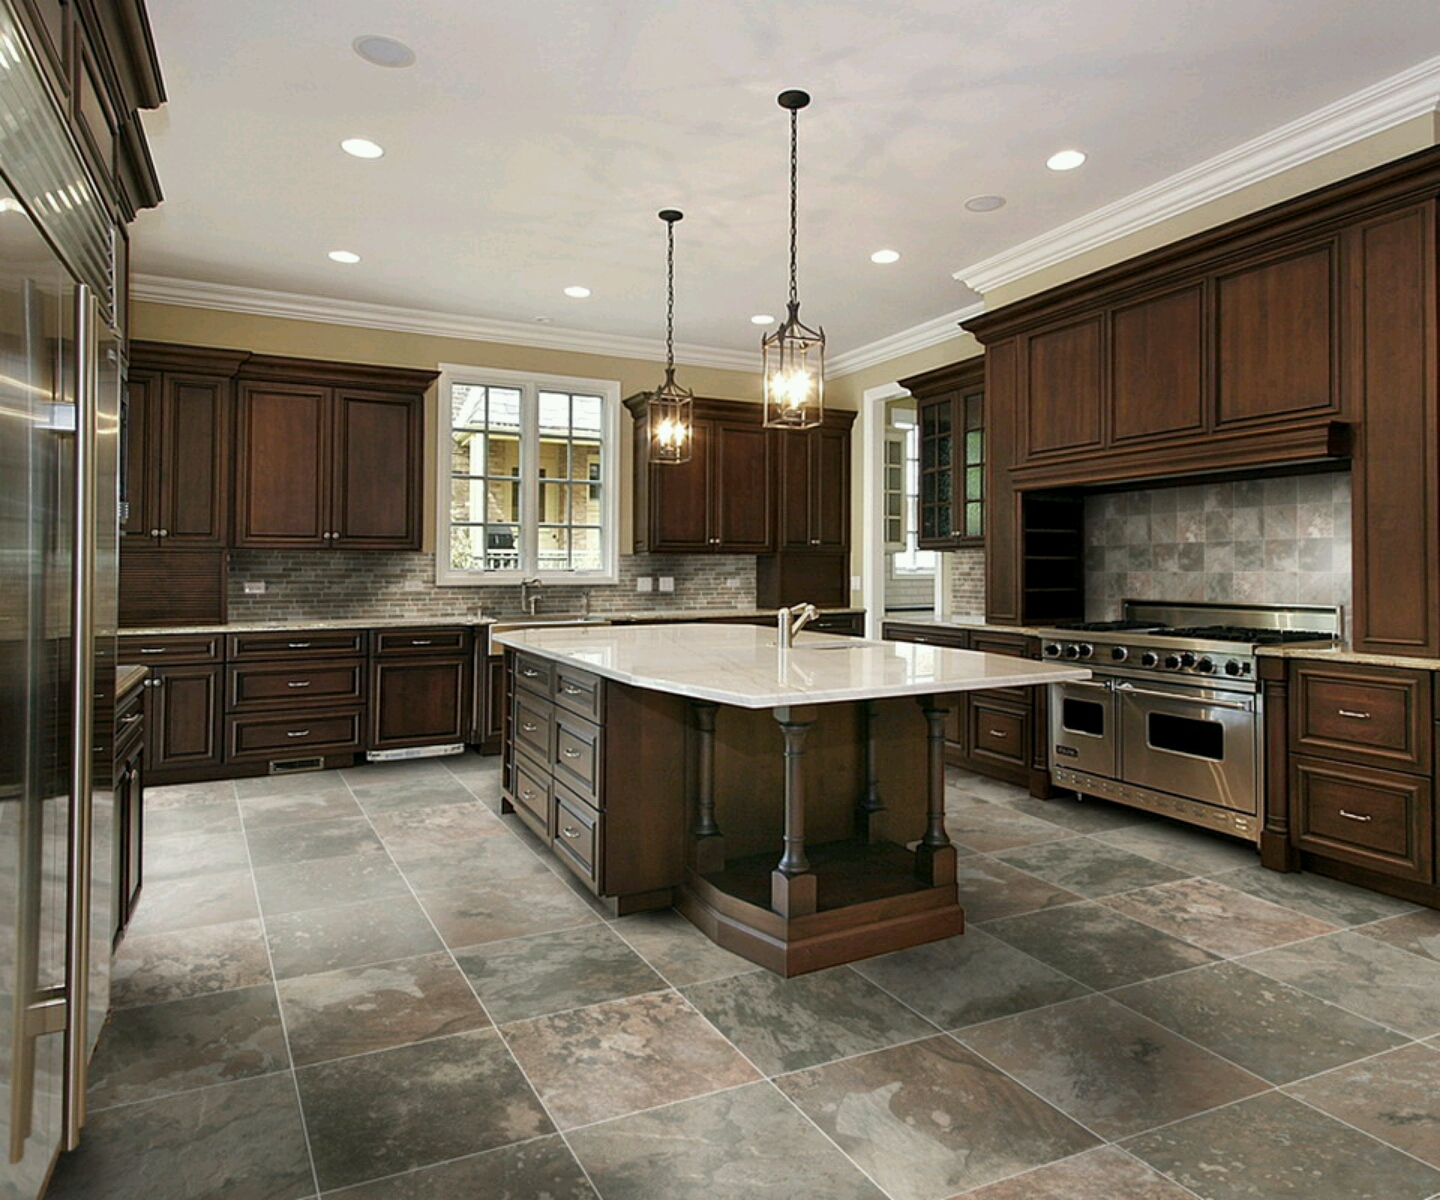 Pictures Of Kitchen Designs Big Lots Chairs Modern Ideas New Home